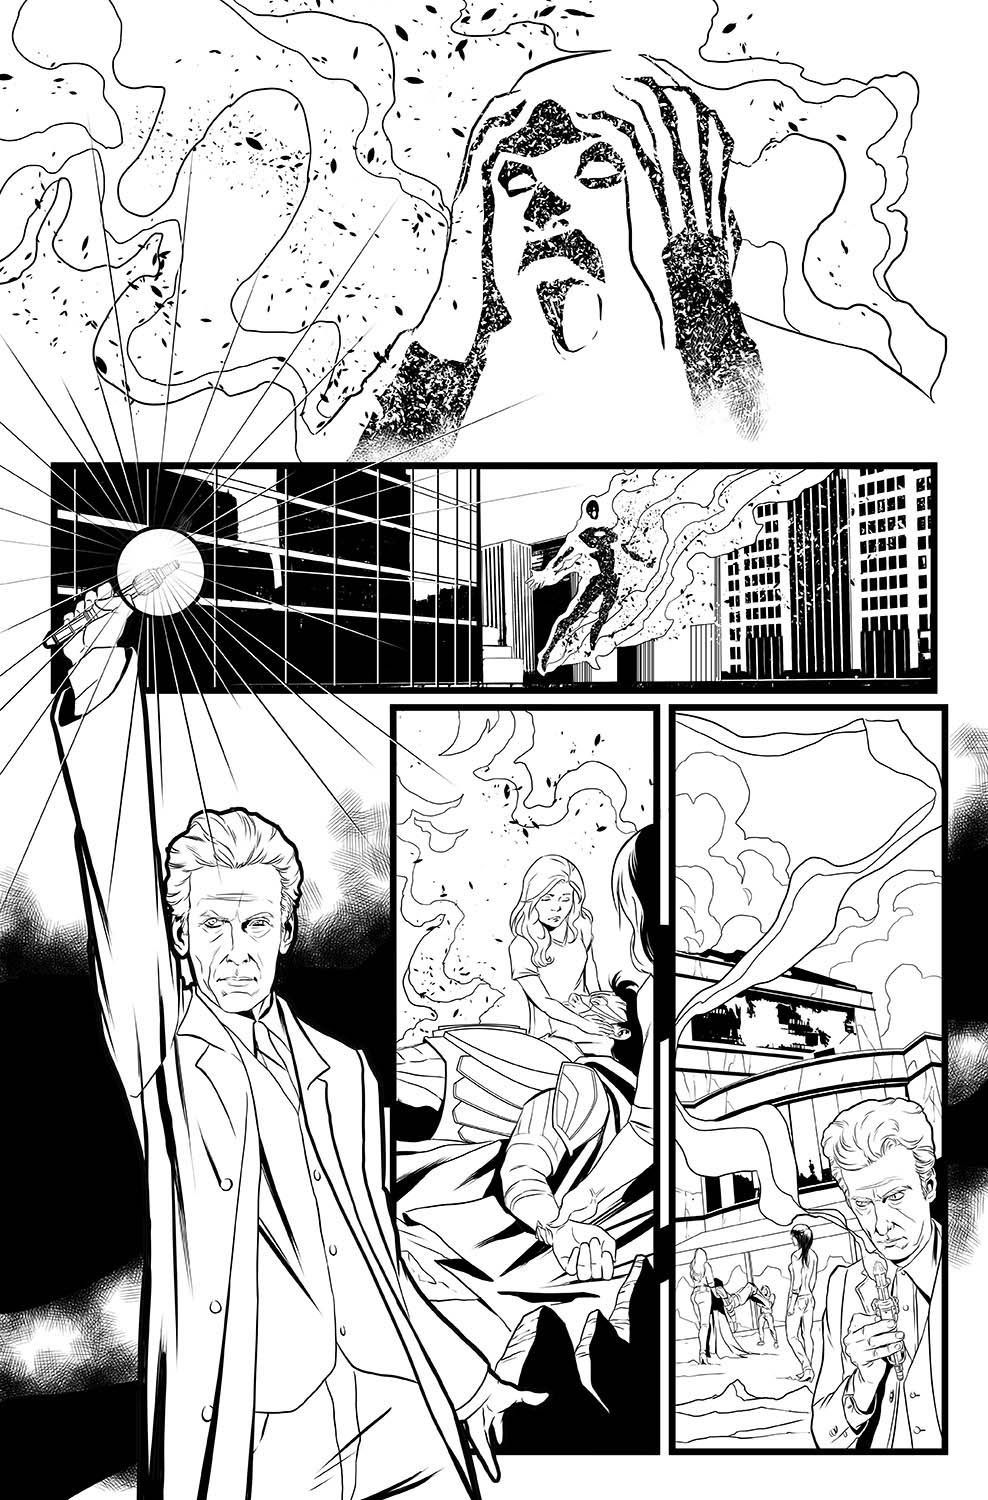 pasquale-qualano-portfolio-interiors-Doctor-Who-12th-Doctor-Ghost-Stories-#3-Page-#2---